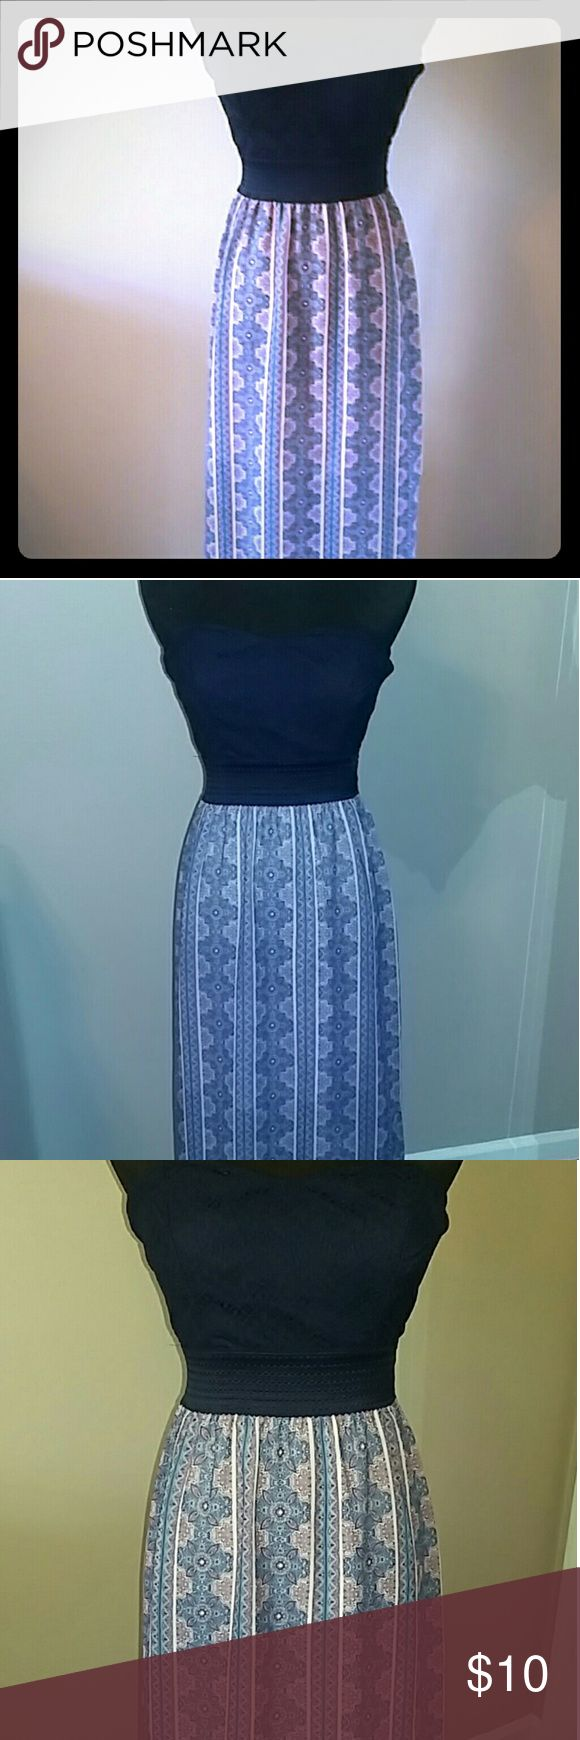 Cute & CHIC, strapless maxi dress size S Love this comfortable, fitted strapless maxi dress. Super cute, chic, and fun! Like new, only worn once! Maurices Dresses Maxi